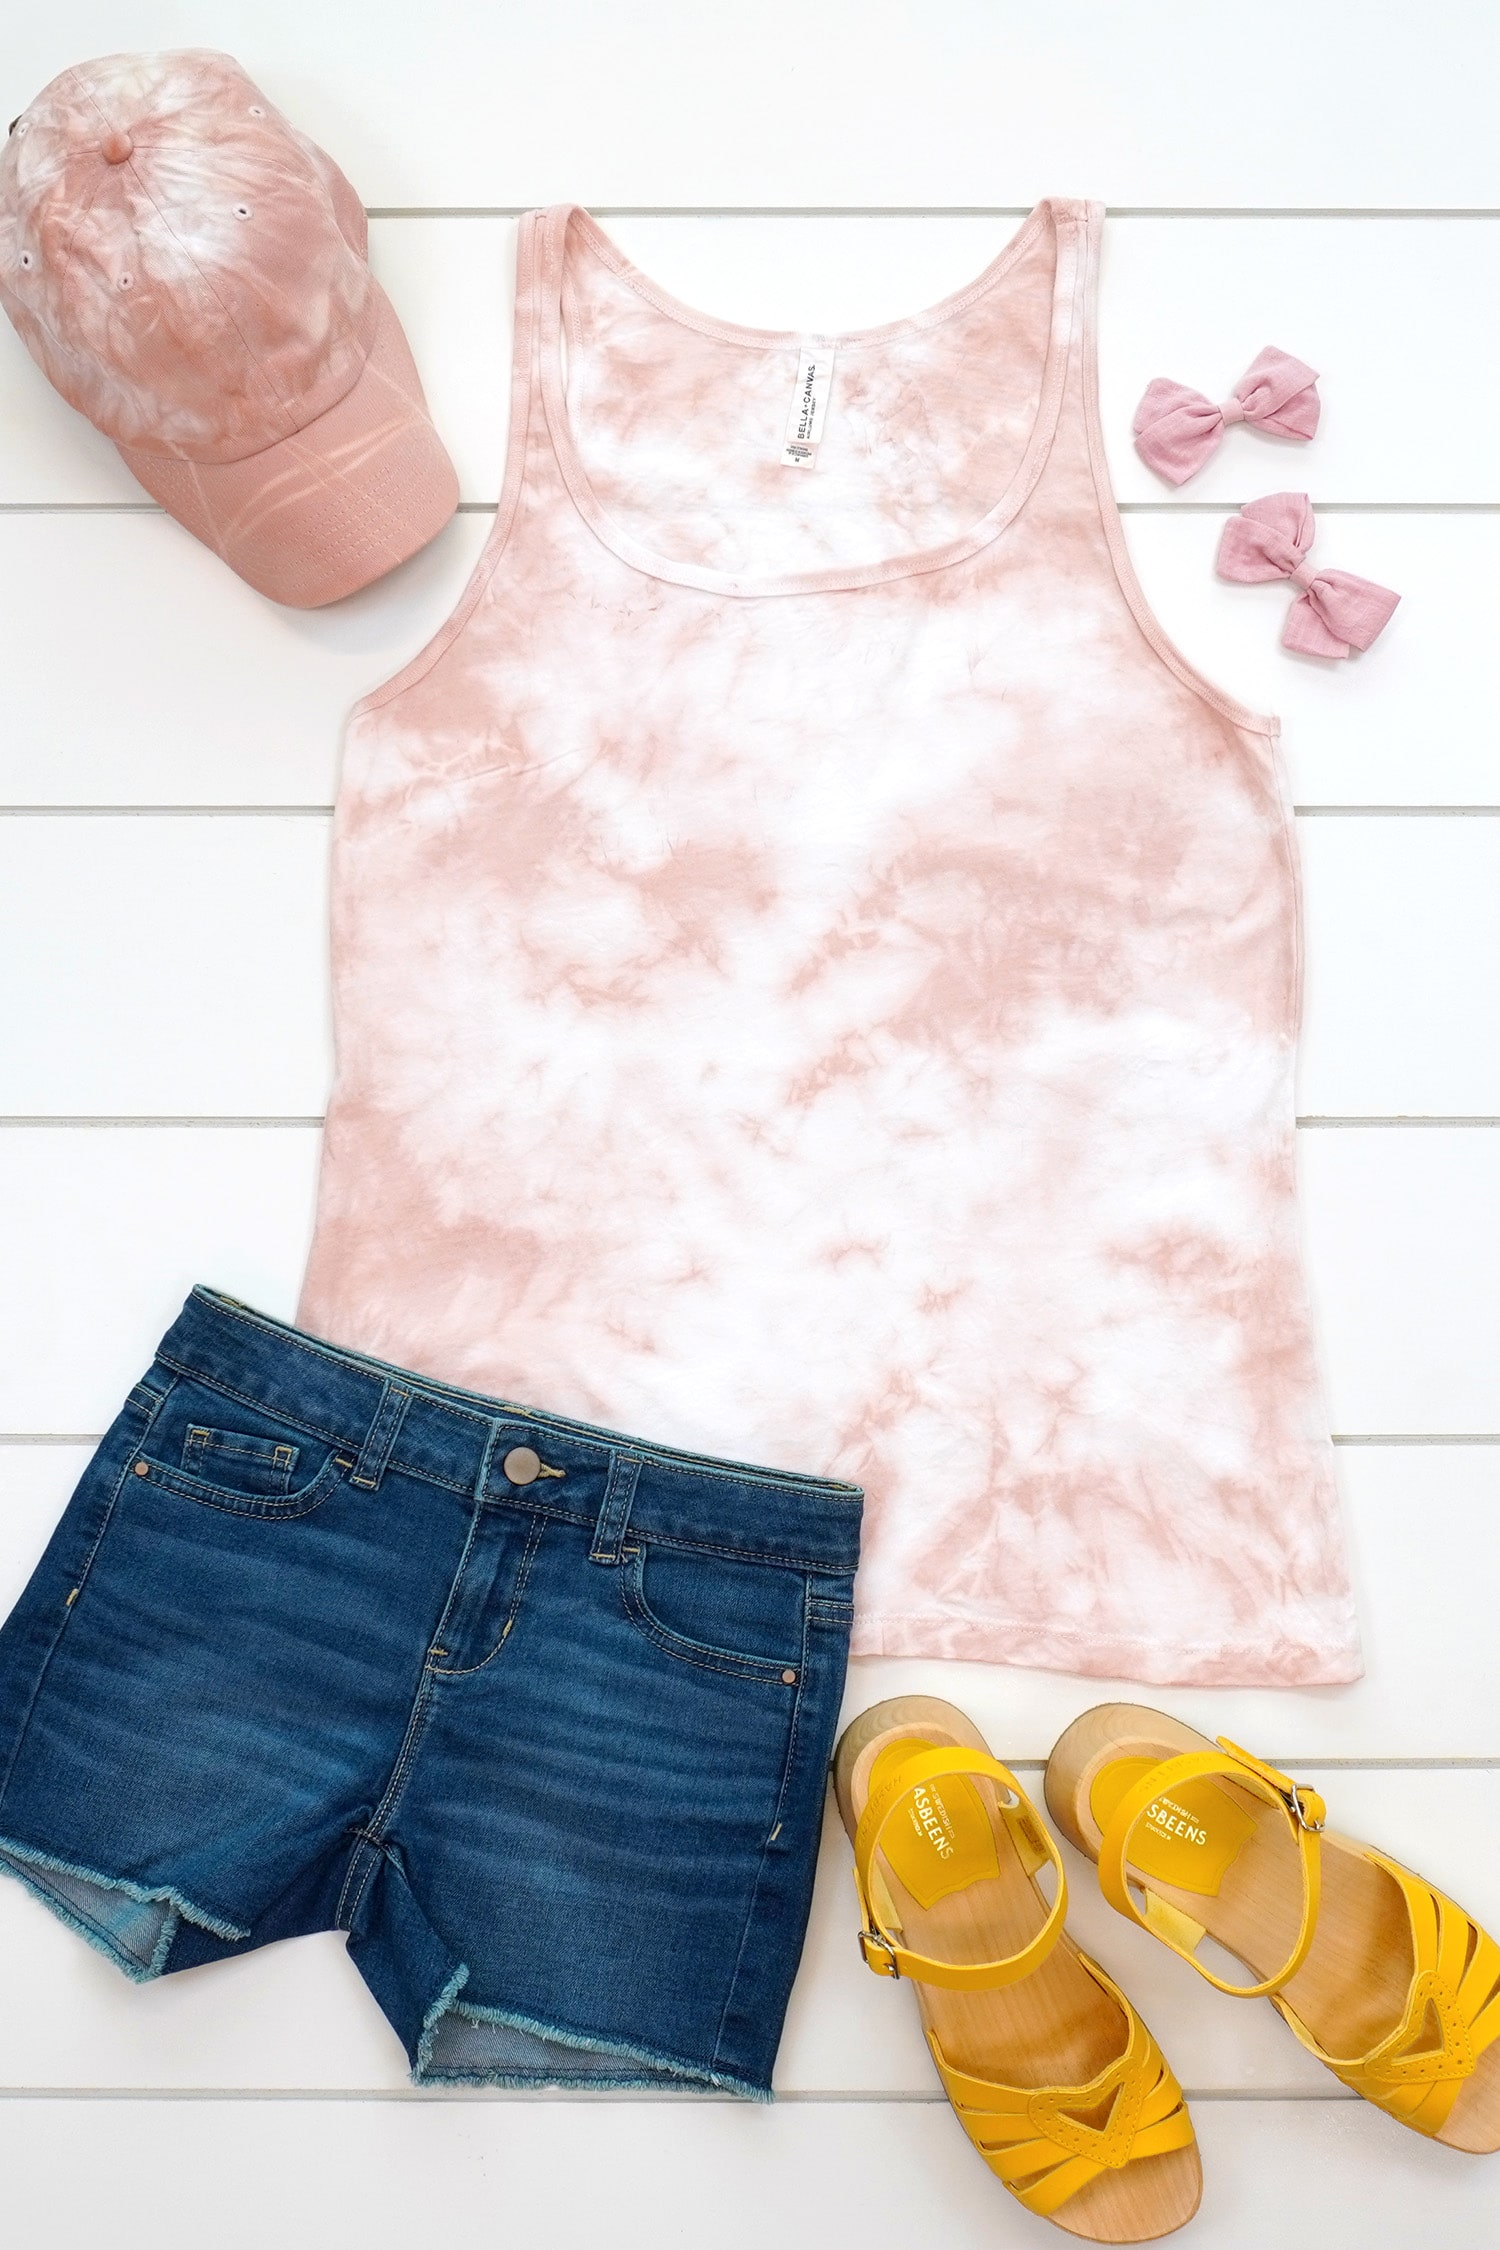 Blush pink tie-dye tank top and baseball hat made with avocado dye staged with an outfit and flowers on a white background